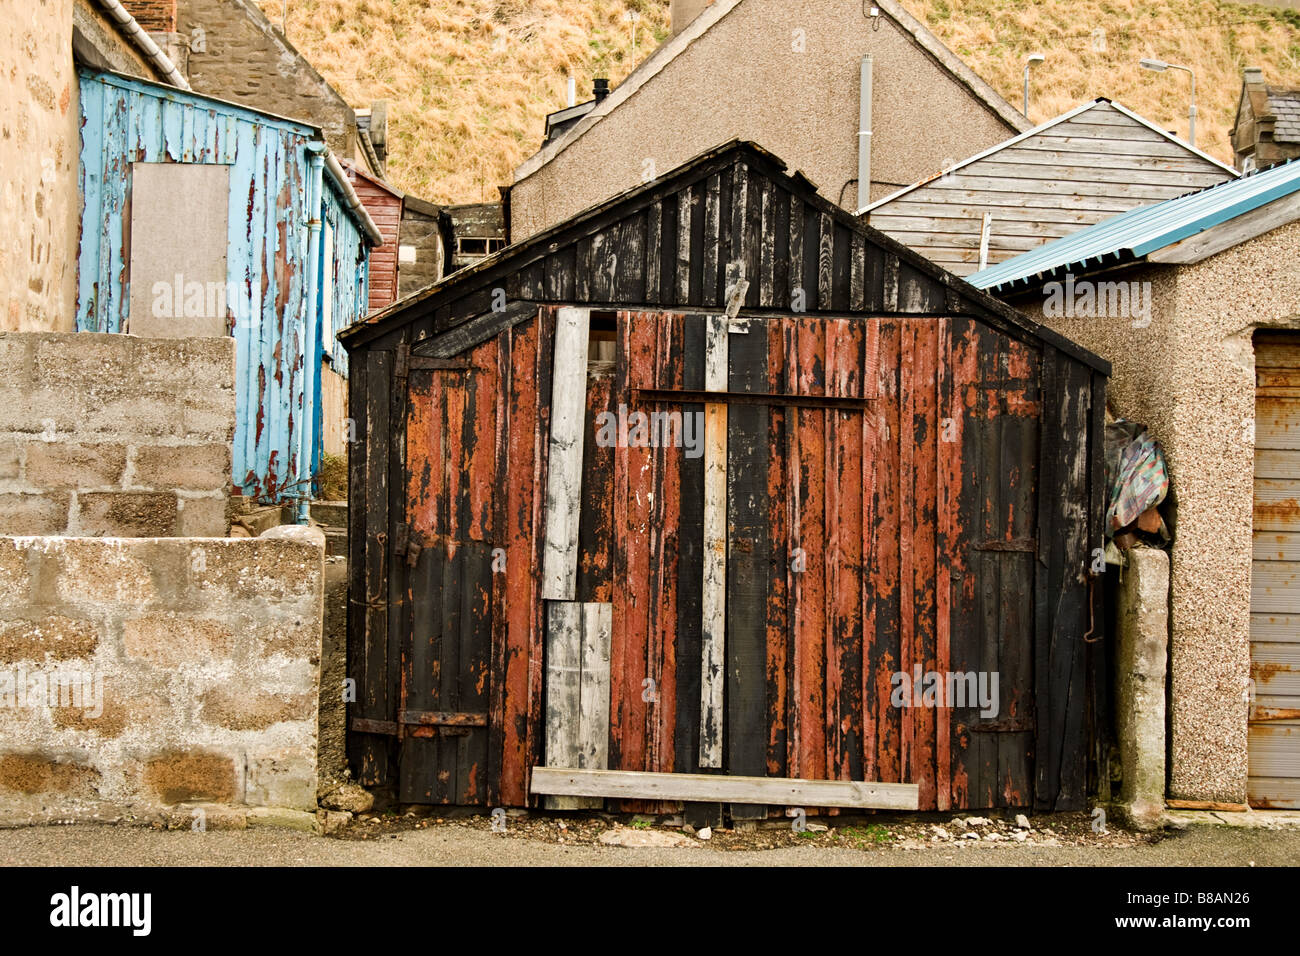 Old weatherbeaten red and black shack slightly squint in Buckie, Scotland - Stock Image